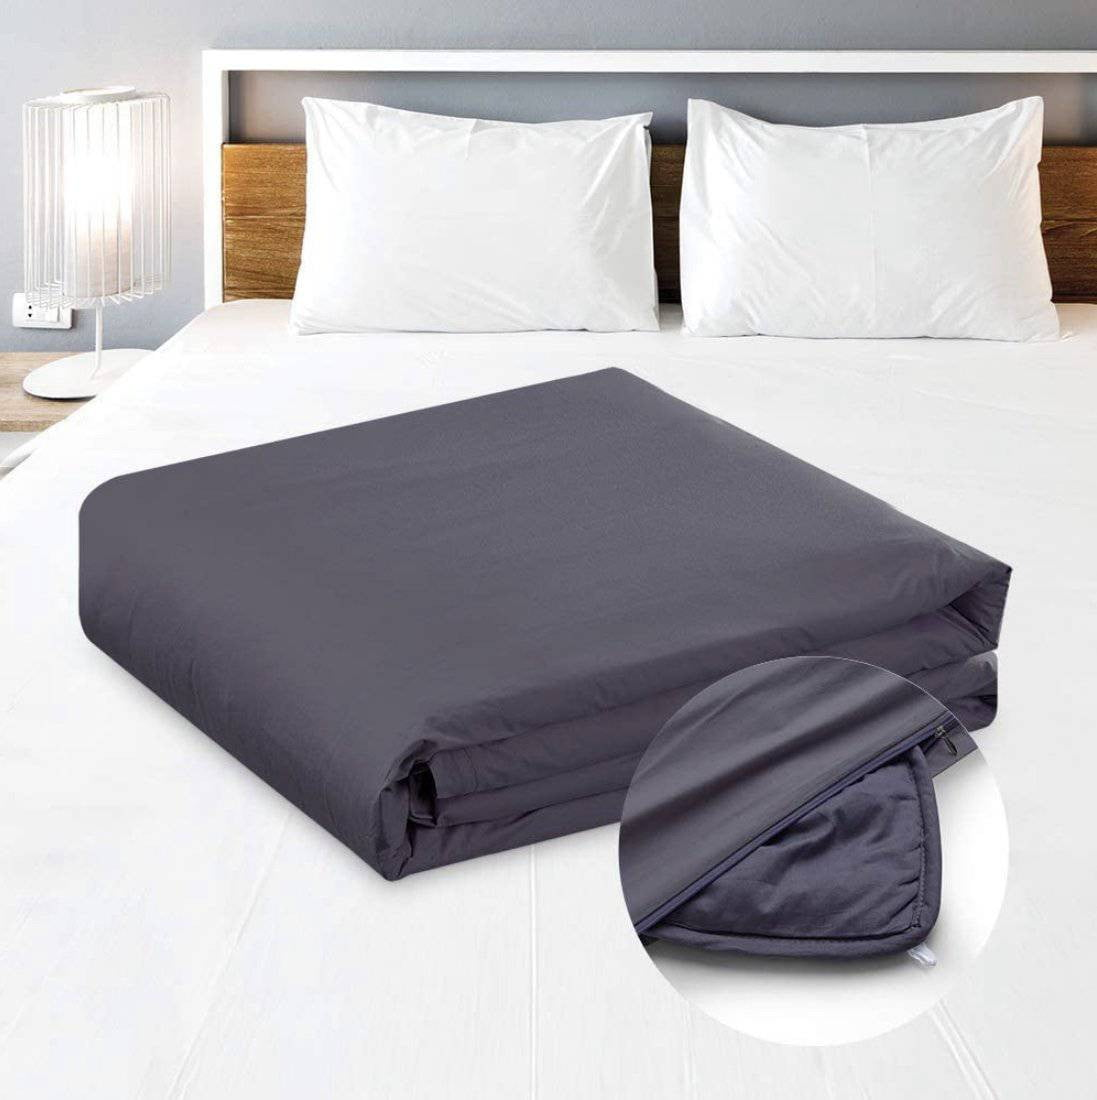 CLASSIC SET FOR WARM SLEEPERS - BETTER SLEEP - Canada's Premium Weighted Blanket